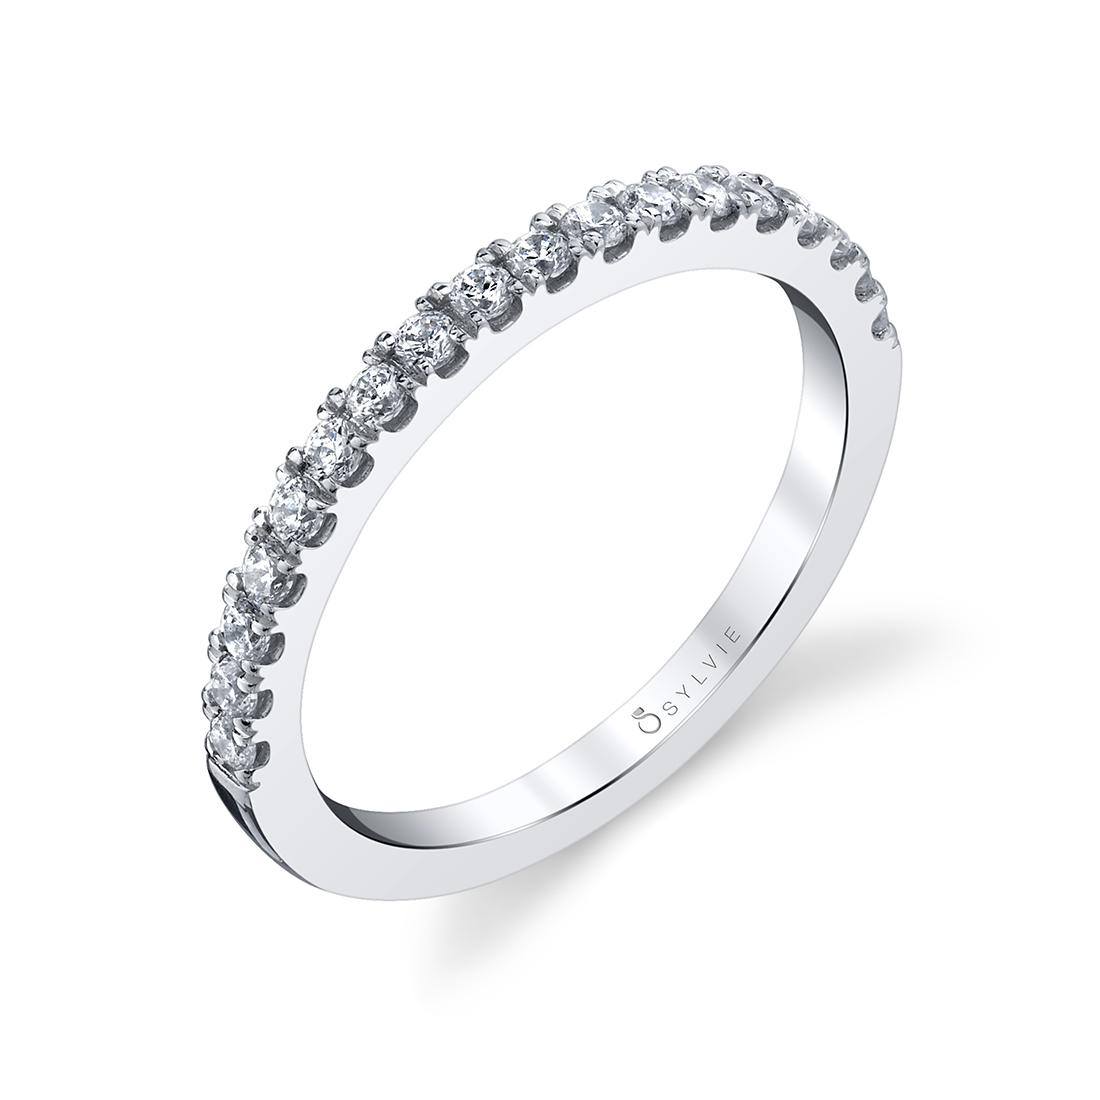 Profile Image of a Princess Cut Engagement Ring With Halo